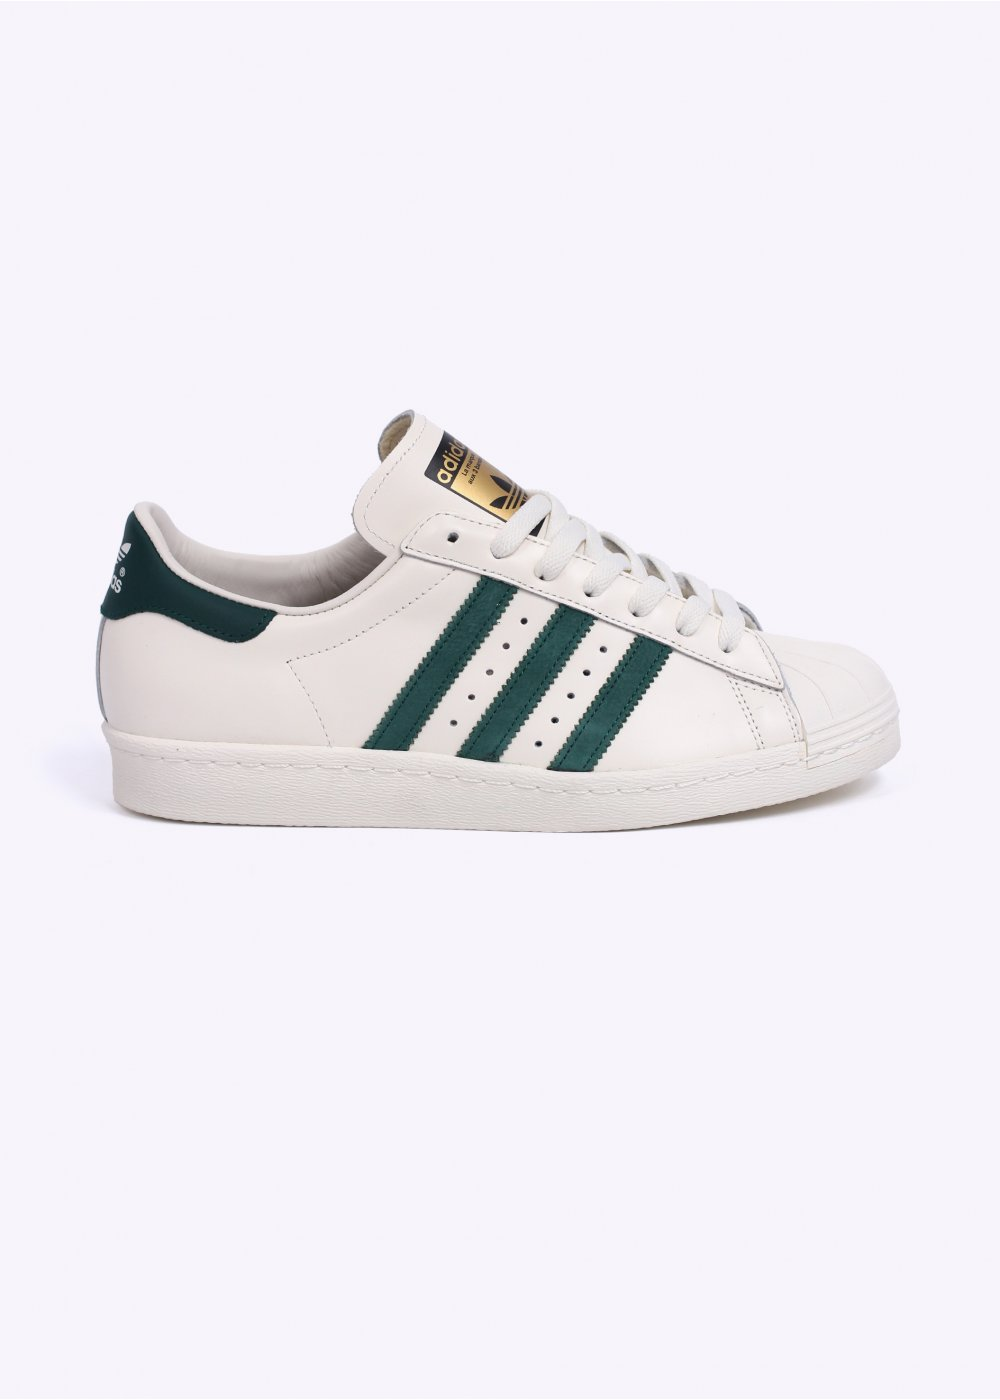 77322807f2ff Superstar 80s Vintage Deluxe Trainers - Vintage White   Collegiate Green    Off White